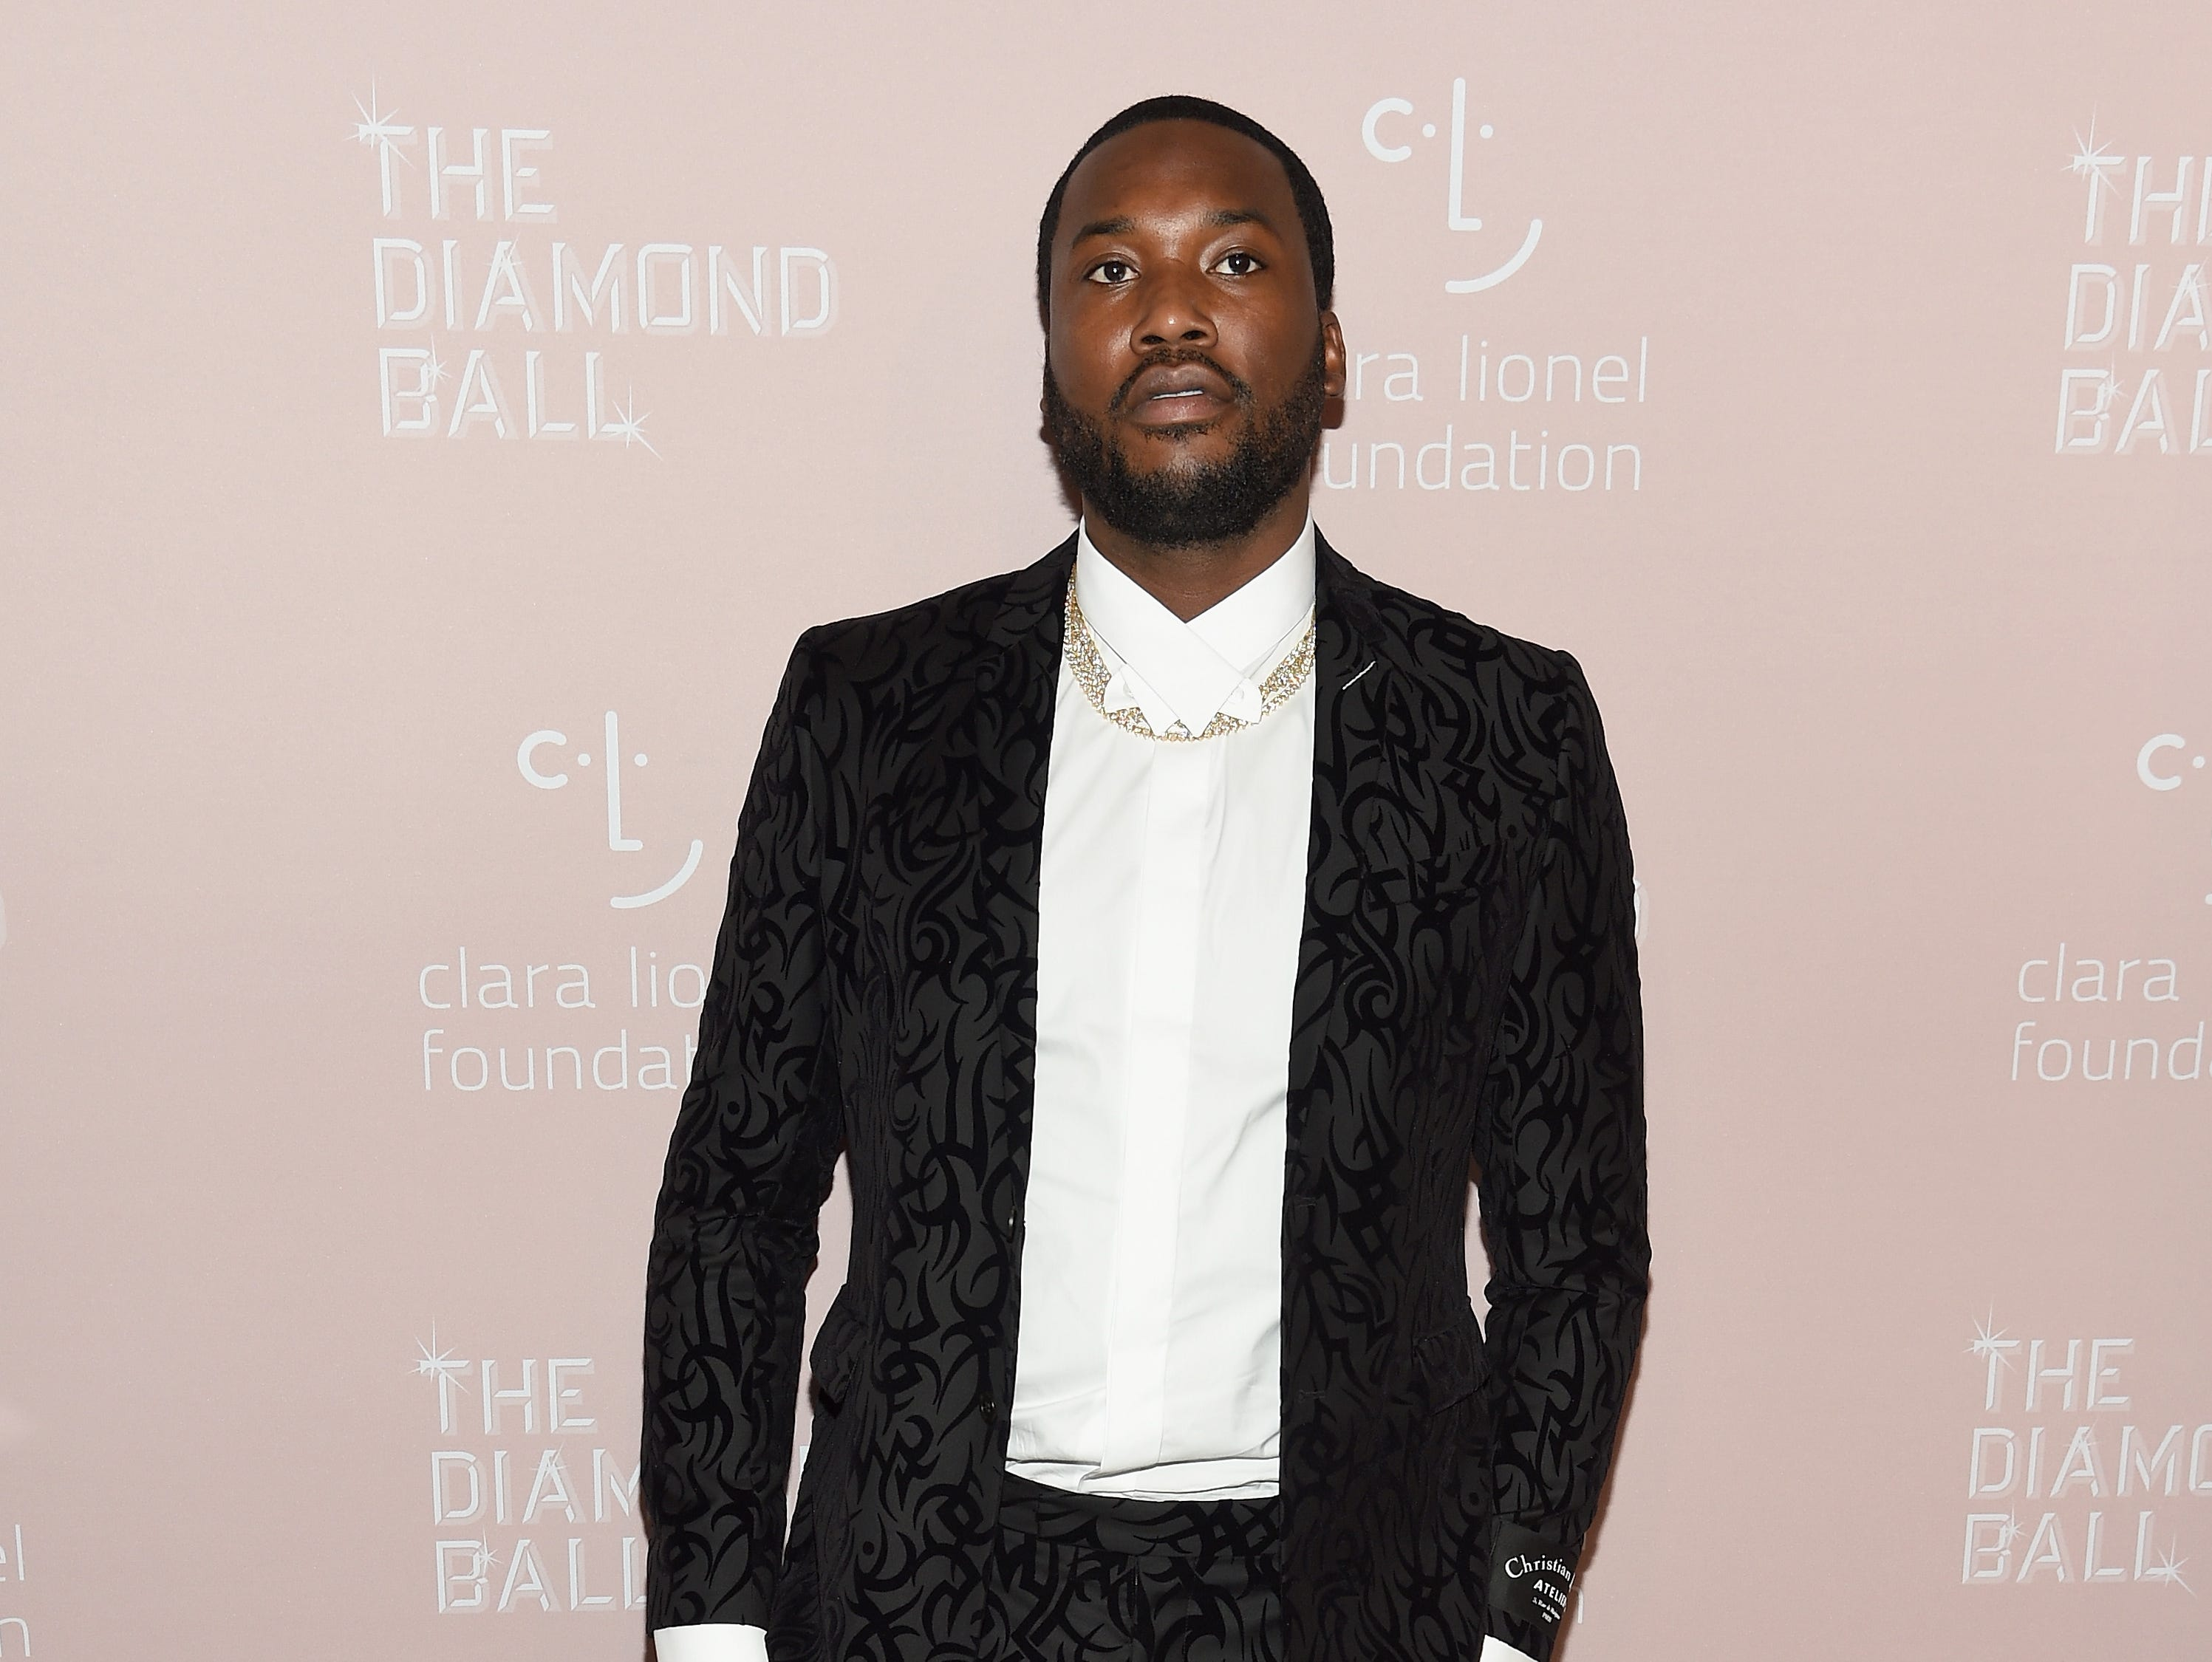 NEW YORK, NY - SEPTEMBER 13: Meek Mill attends Rihanna's 4th Annual Diamond Ball benefitting The Clara Lionel Foundation at Cipriani Wall Street on September 13, 2018 in New York City.  (Photo by Dimitrios Kambouris/Getty Images for Diamond Ball) ORG XMIT: 775197456 ORIG FILE ID: 1032941658